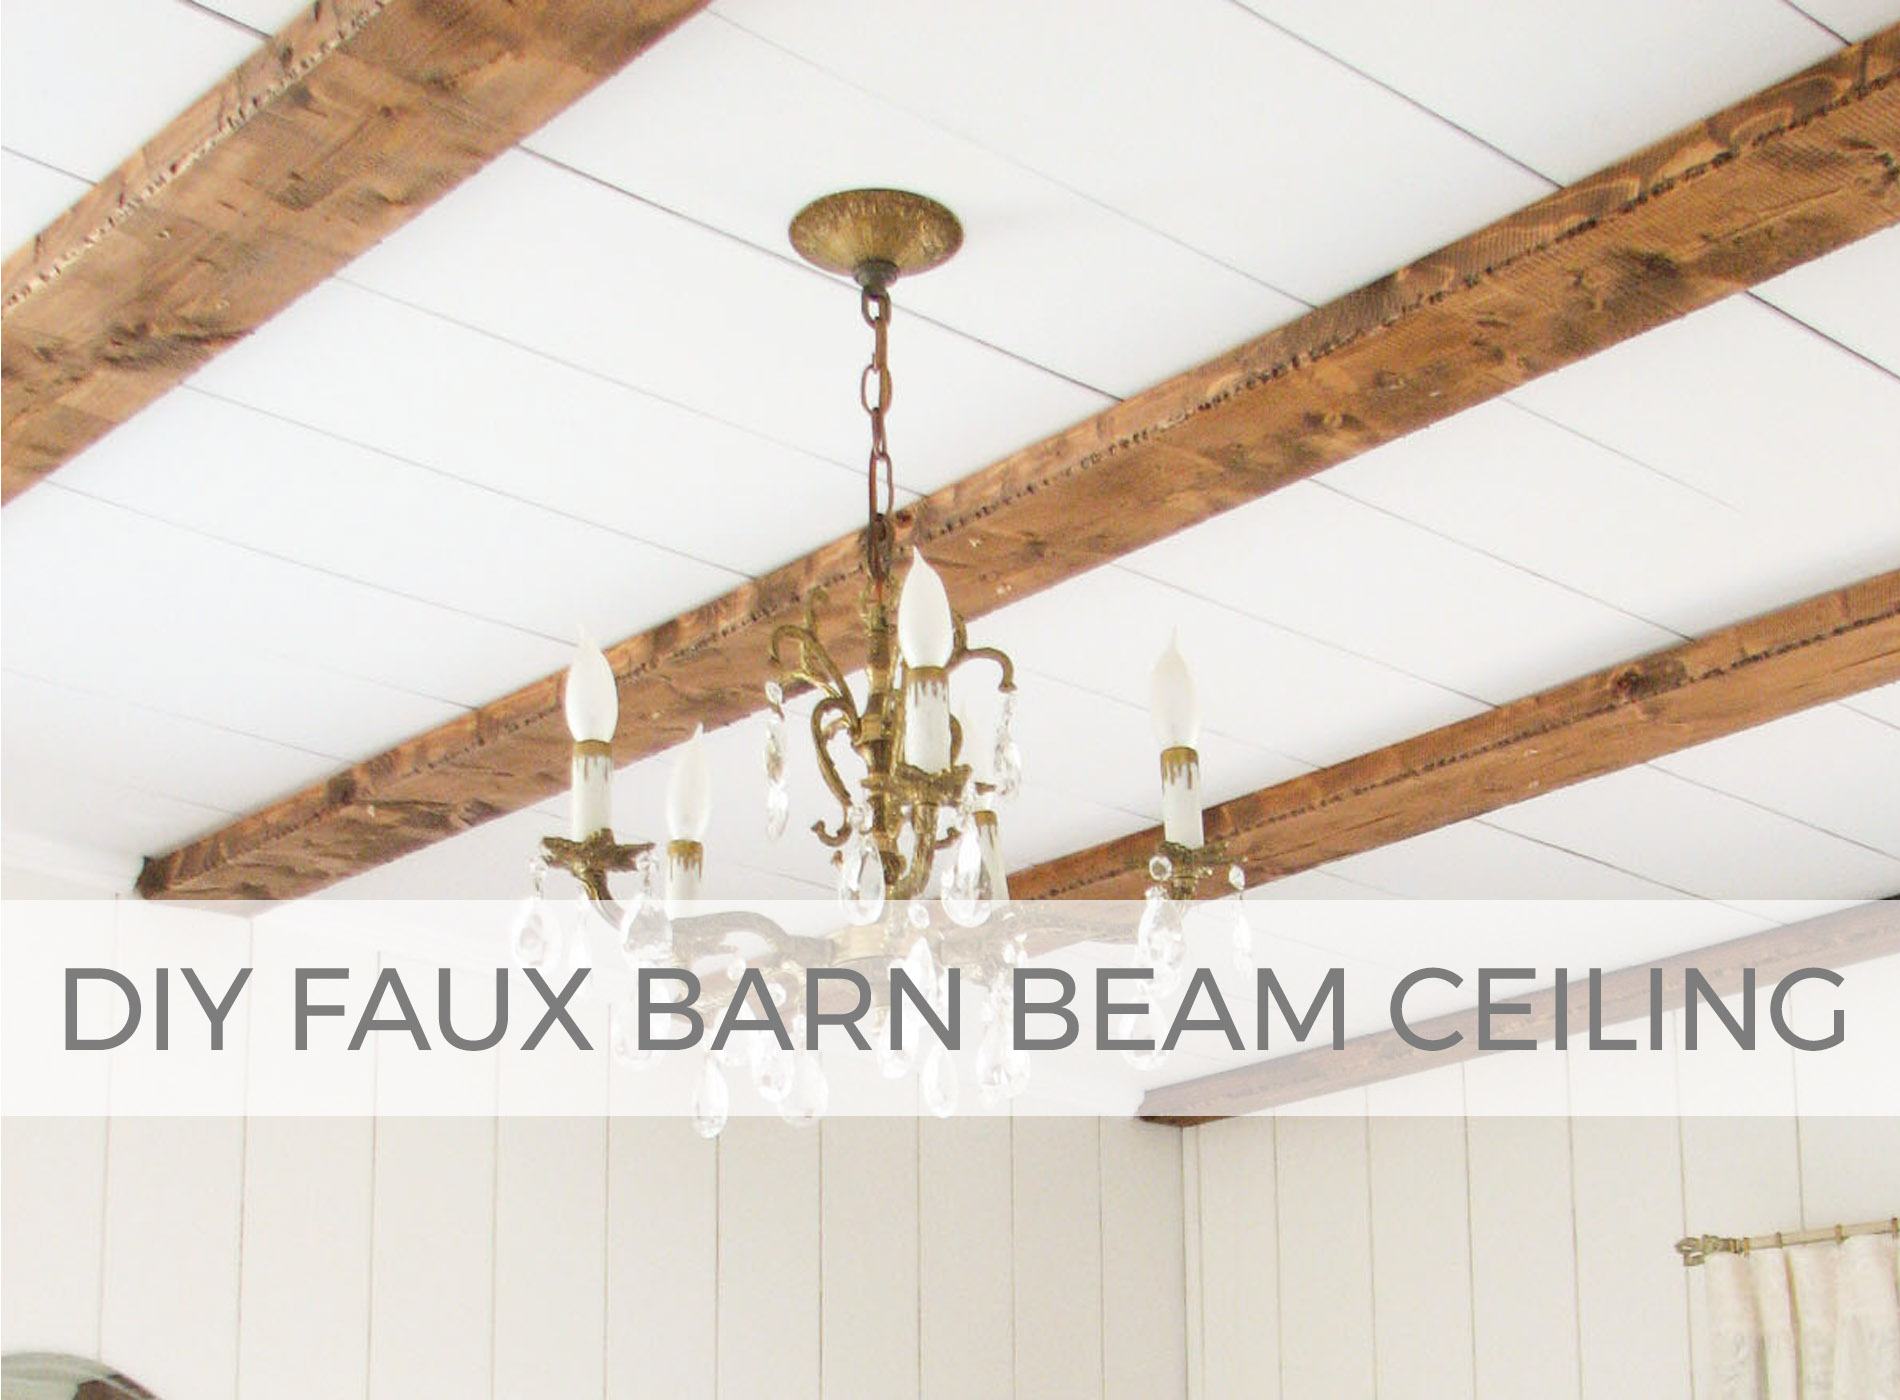 Get farmhouse feel with this faux barn beam ceiling tutorial by Larissa of Prodigal Pieces | prodigalpieces.com #prodigalpieces